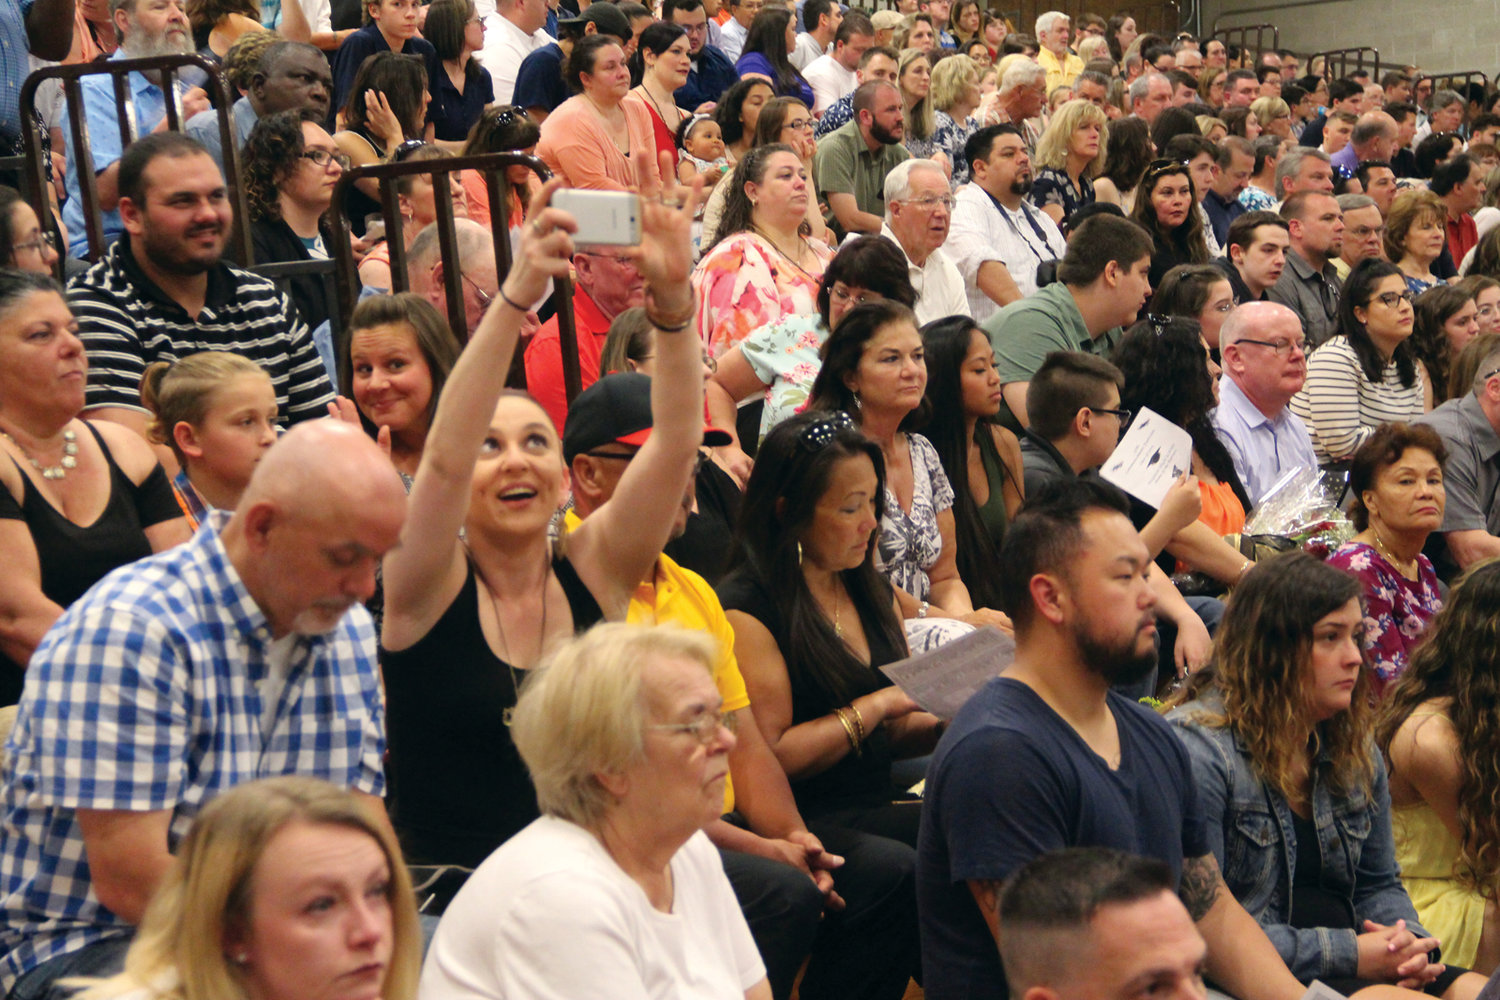 SHOT FROM THE CROWD: The bleachers were filled as friends and family packed the CCRI field house for the Pilgrim commencement.